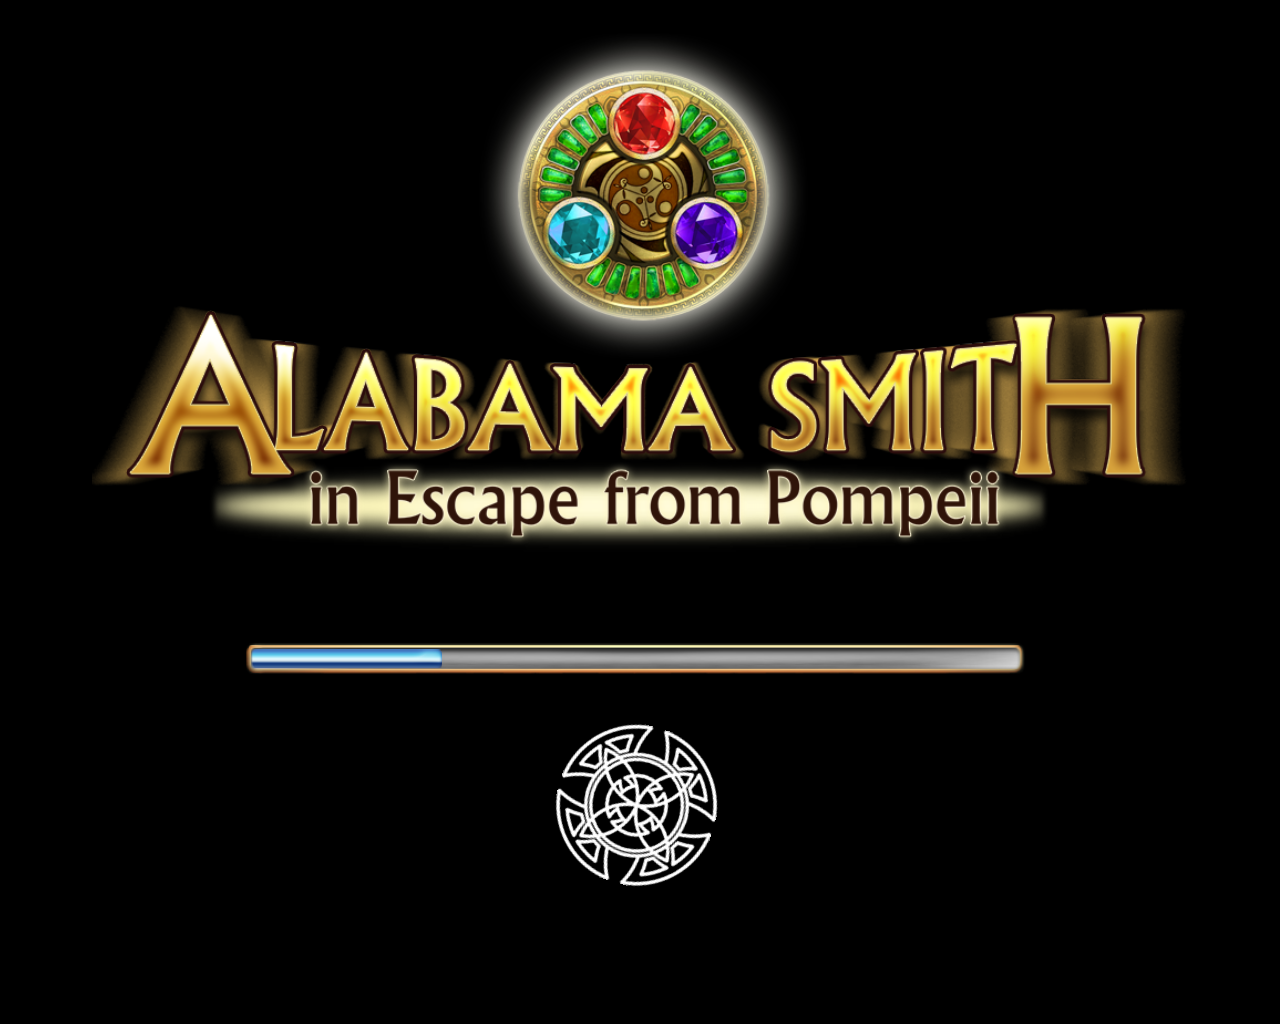 Alabama Smith in Escape from Pompeii Windows Loading screen